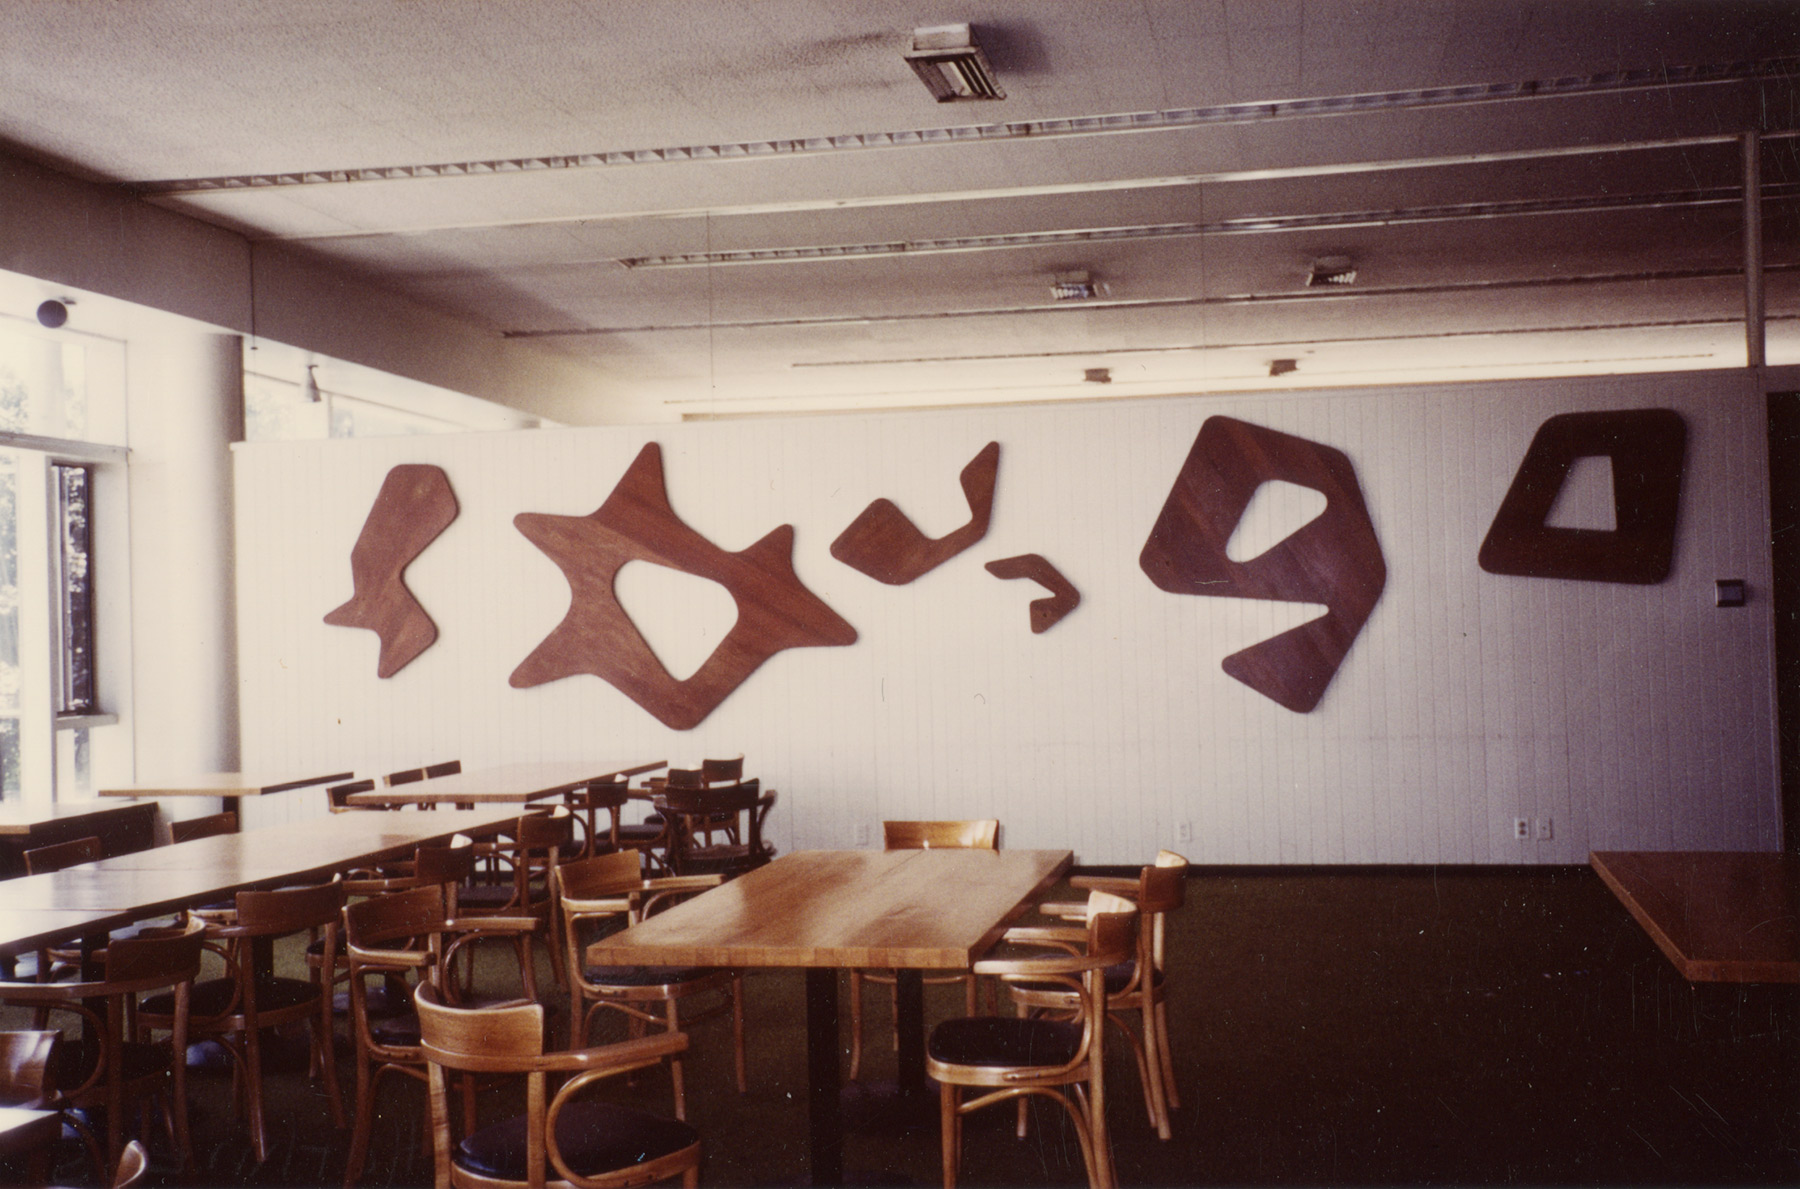 South wall of Constellations II, 1985. Harvard Law School Buildings Collection, Special Collections, Harvard Law School Library, Harvard University. Photo: Aimée Bleikasten. Again, it's clear that the paint has been stripped off of the panels.